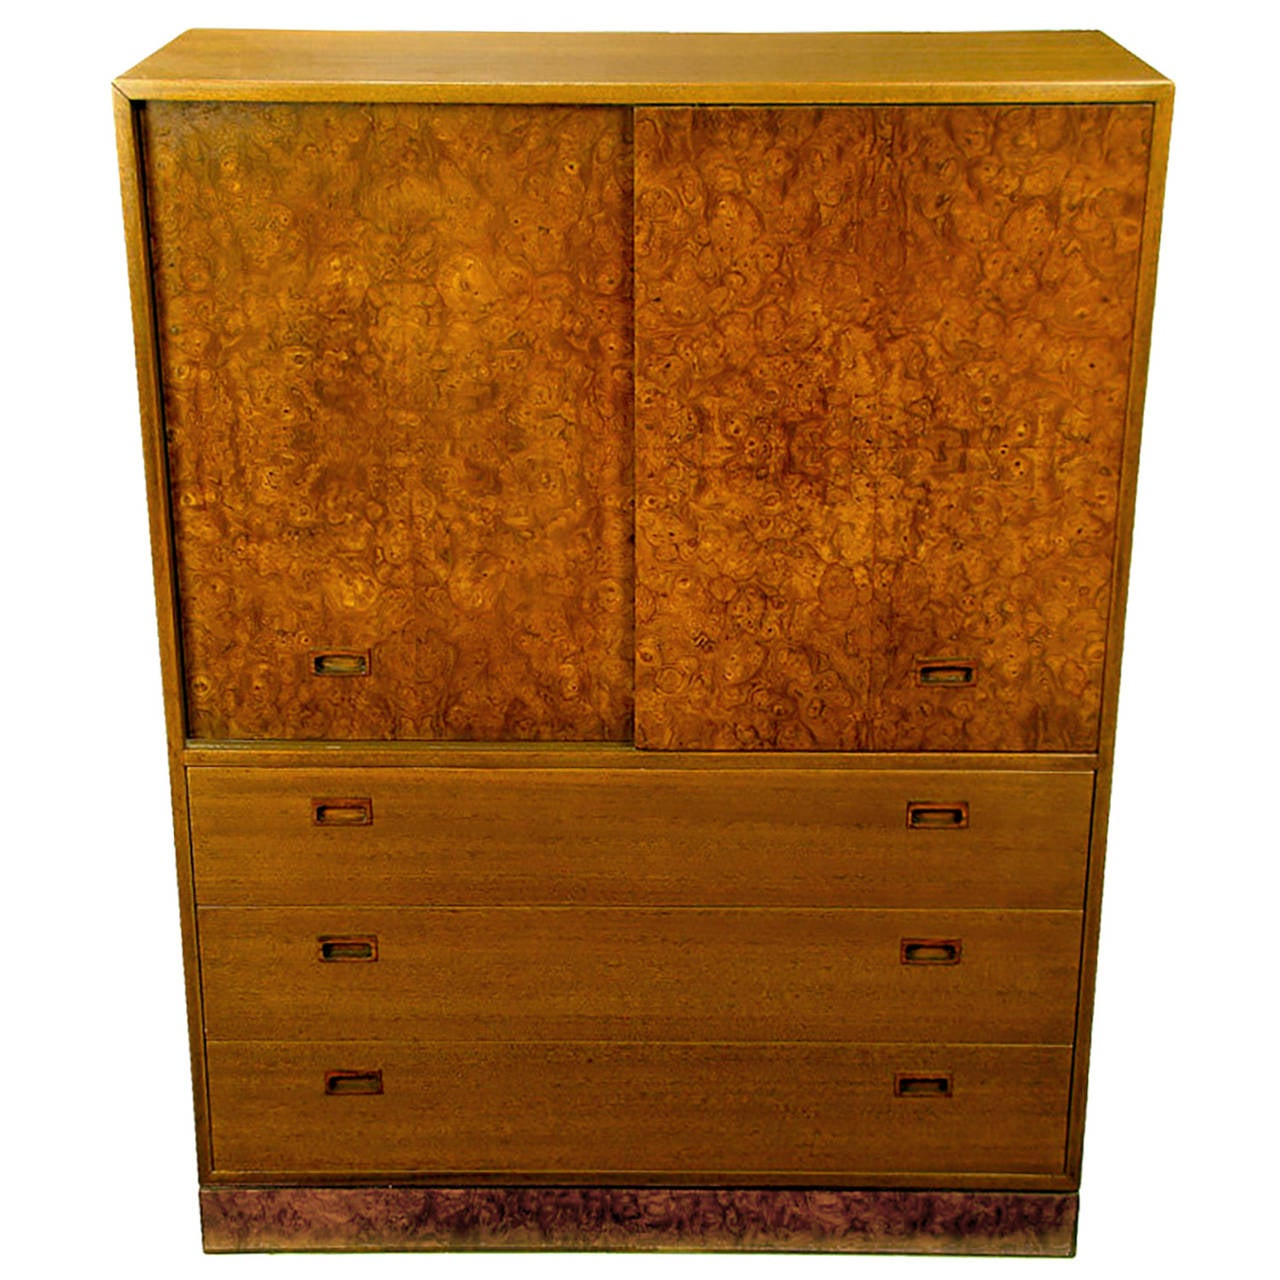 This sleek clean lined Harvey Probber gentleman's bureau features burl wood doors with recessed rosewood pulls. The doors slide to reveal three cork lined trays and four shirt drawers. Three large lower drawers come with the same recessed pulls and